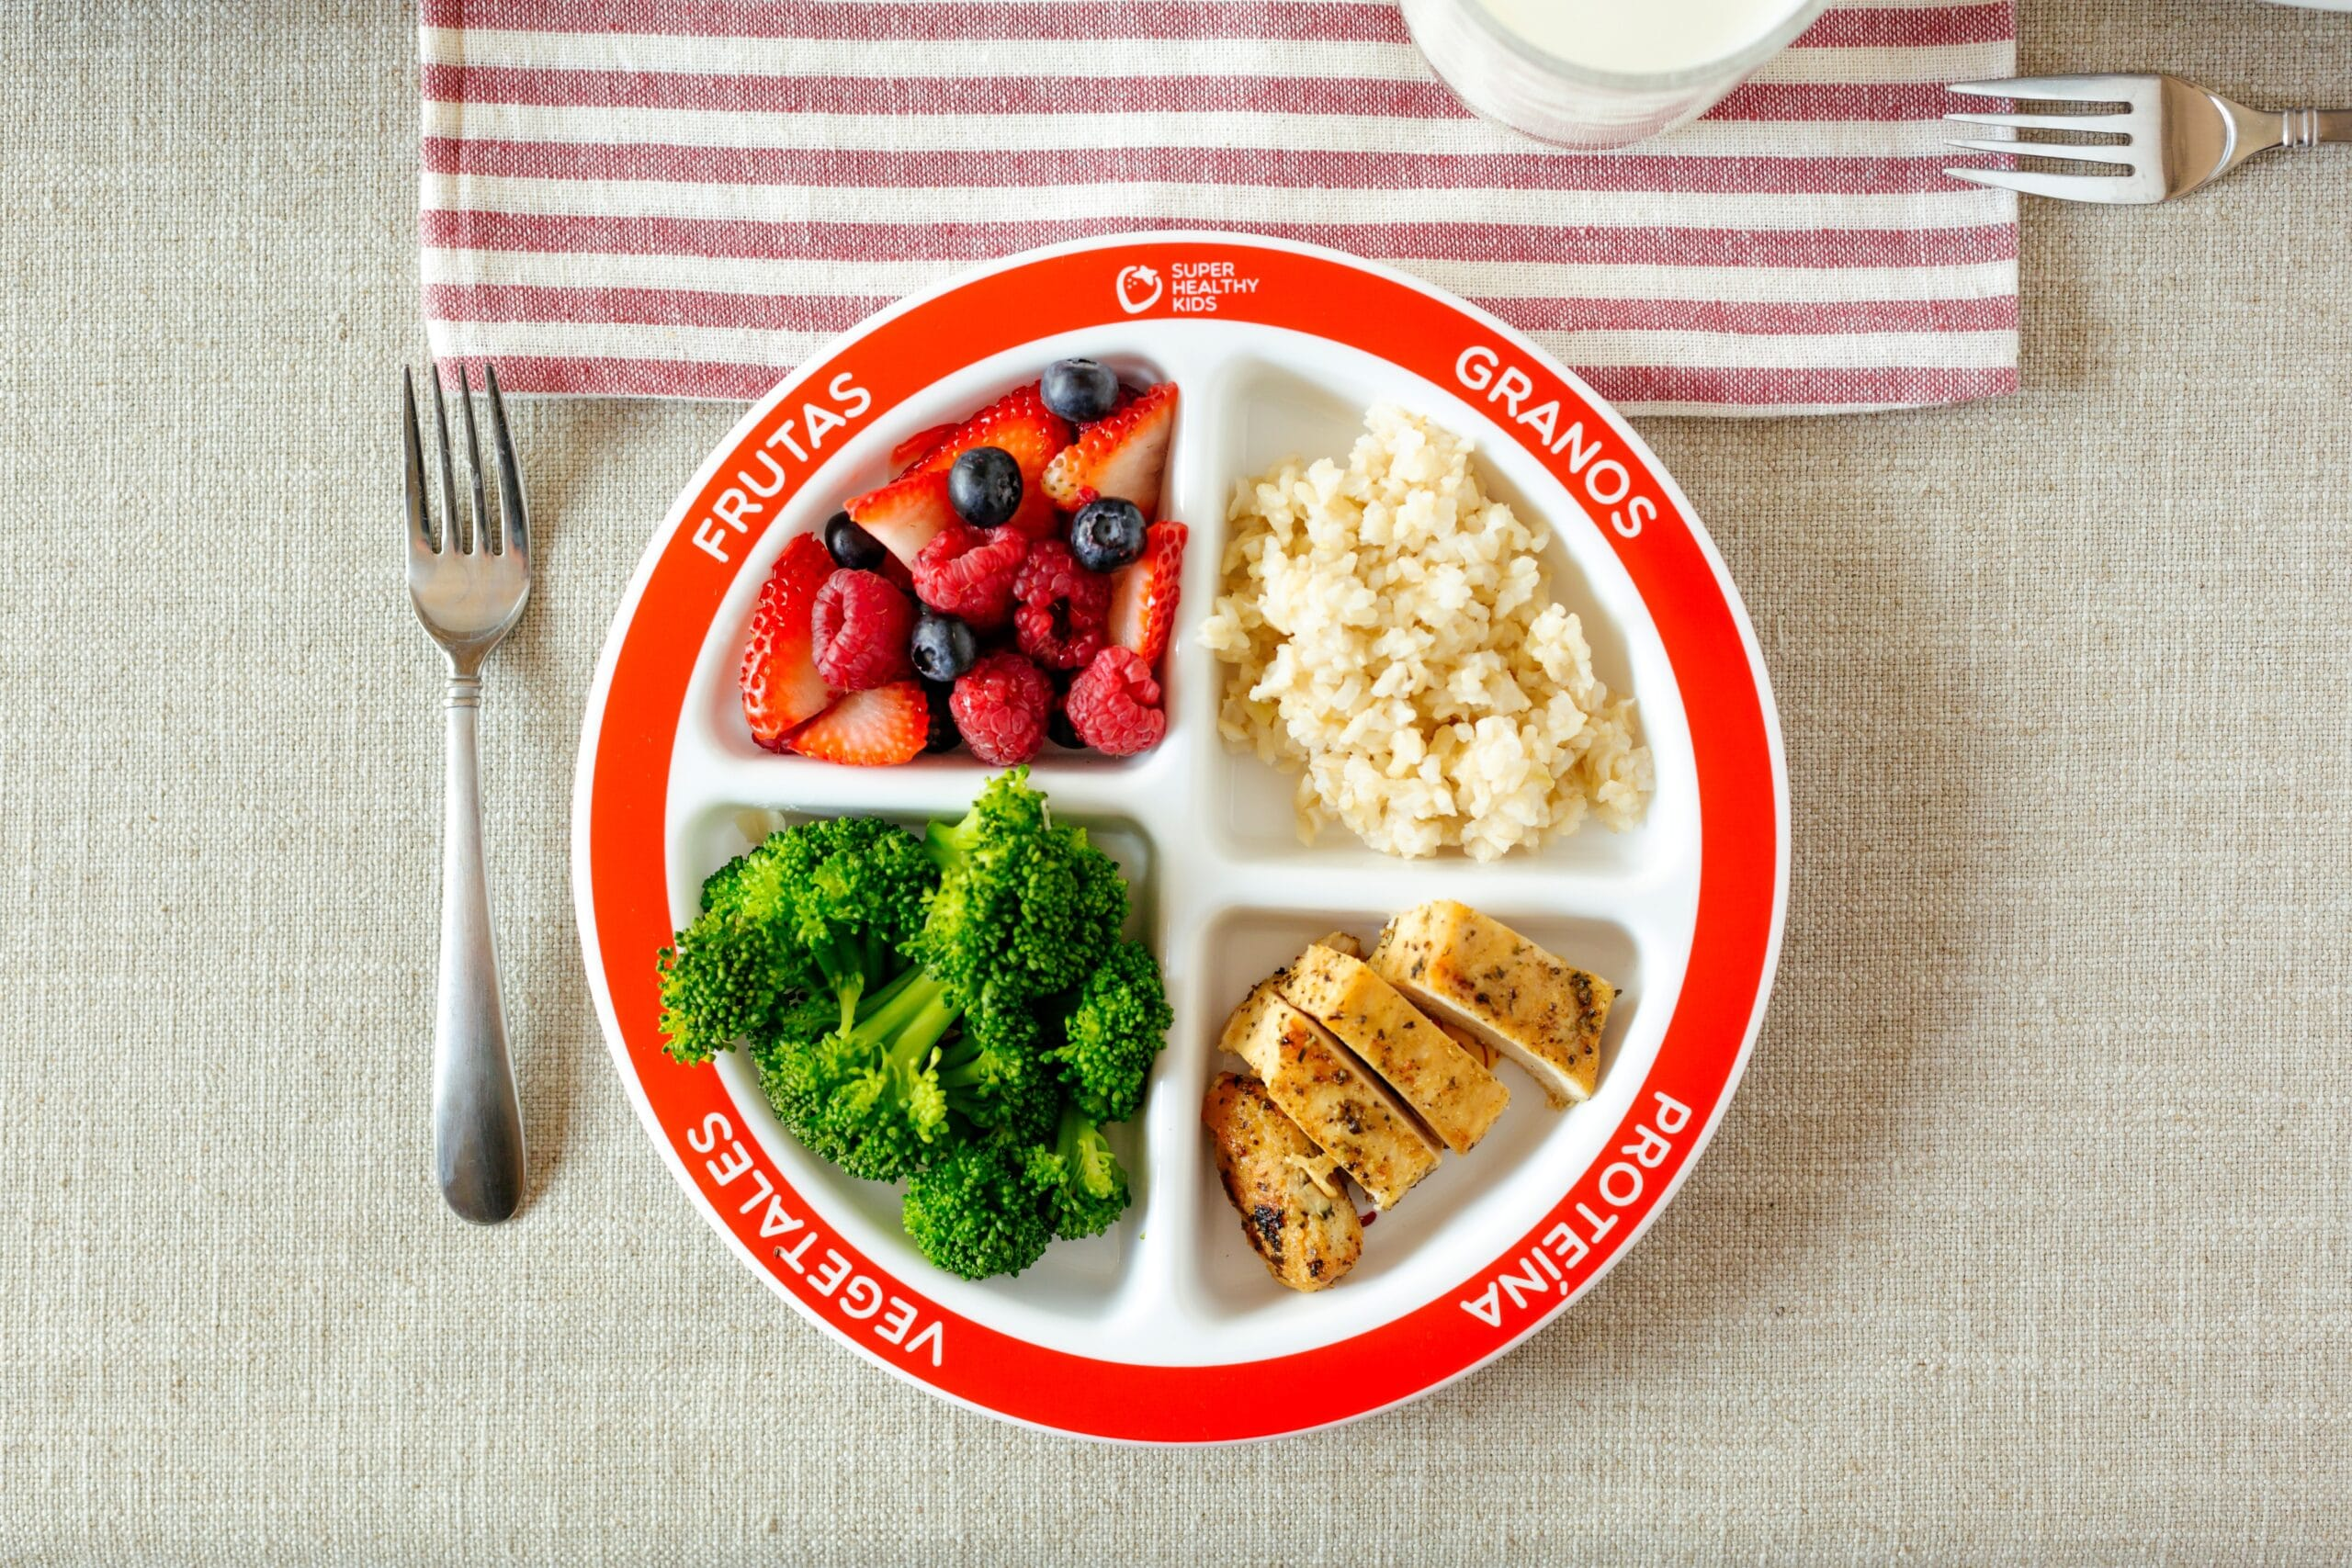 myplate guide to portion sizes healthy ideas for kids. Black Bedroom Furniture Sets. Home Design Ideas